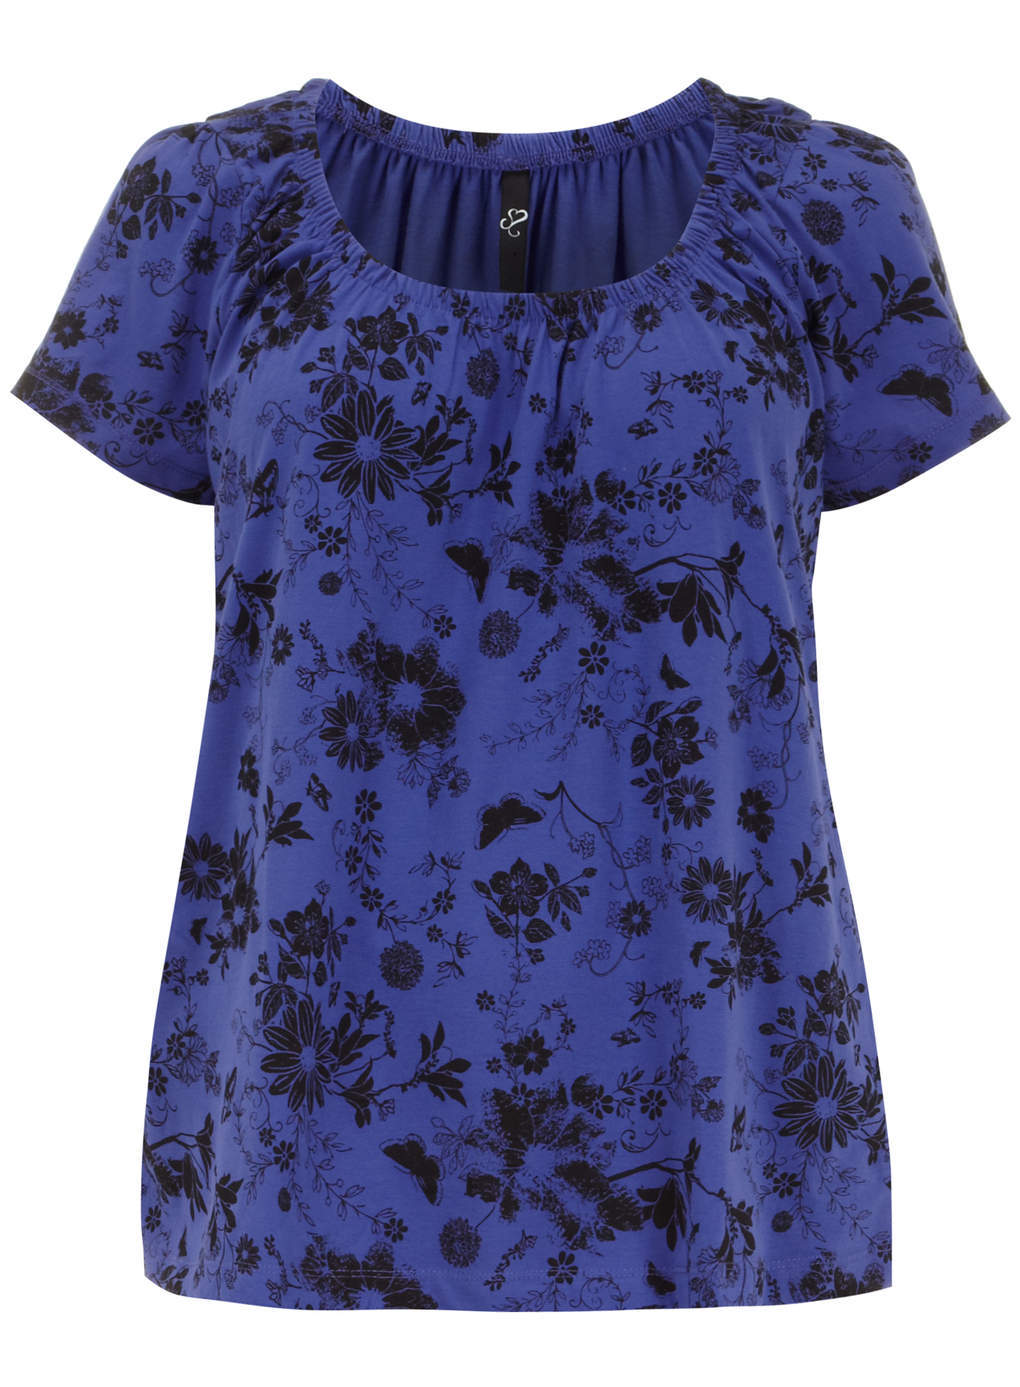 Purple Printed Floral Top - neckline: round neck; style: t-shirt; predominant colour: navy; secondary colour: black; occasions: casual; length: standard; fibres: polyester/polyamide - 100%; fit: body skimming; sleeve length: short sleeve; sleeve style: standard; pattern type: fabric; pattern size: standard; pattern: florals; texture group: jersey - stretchy/drapey; trends: furious florals; season: s/s 2014